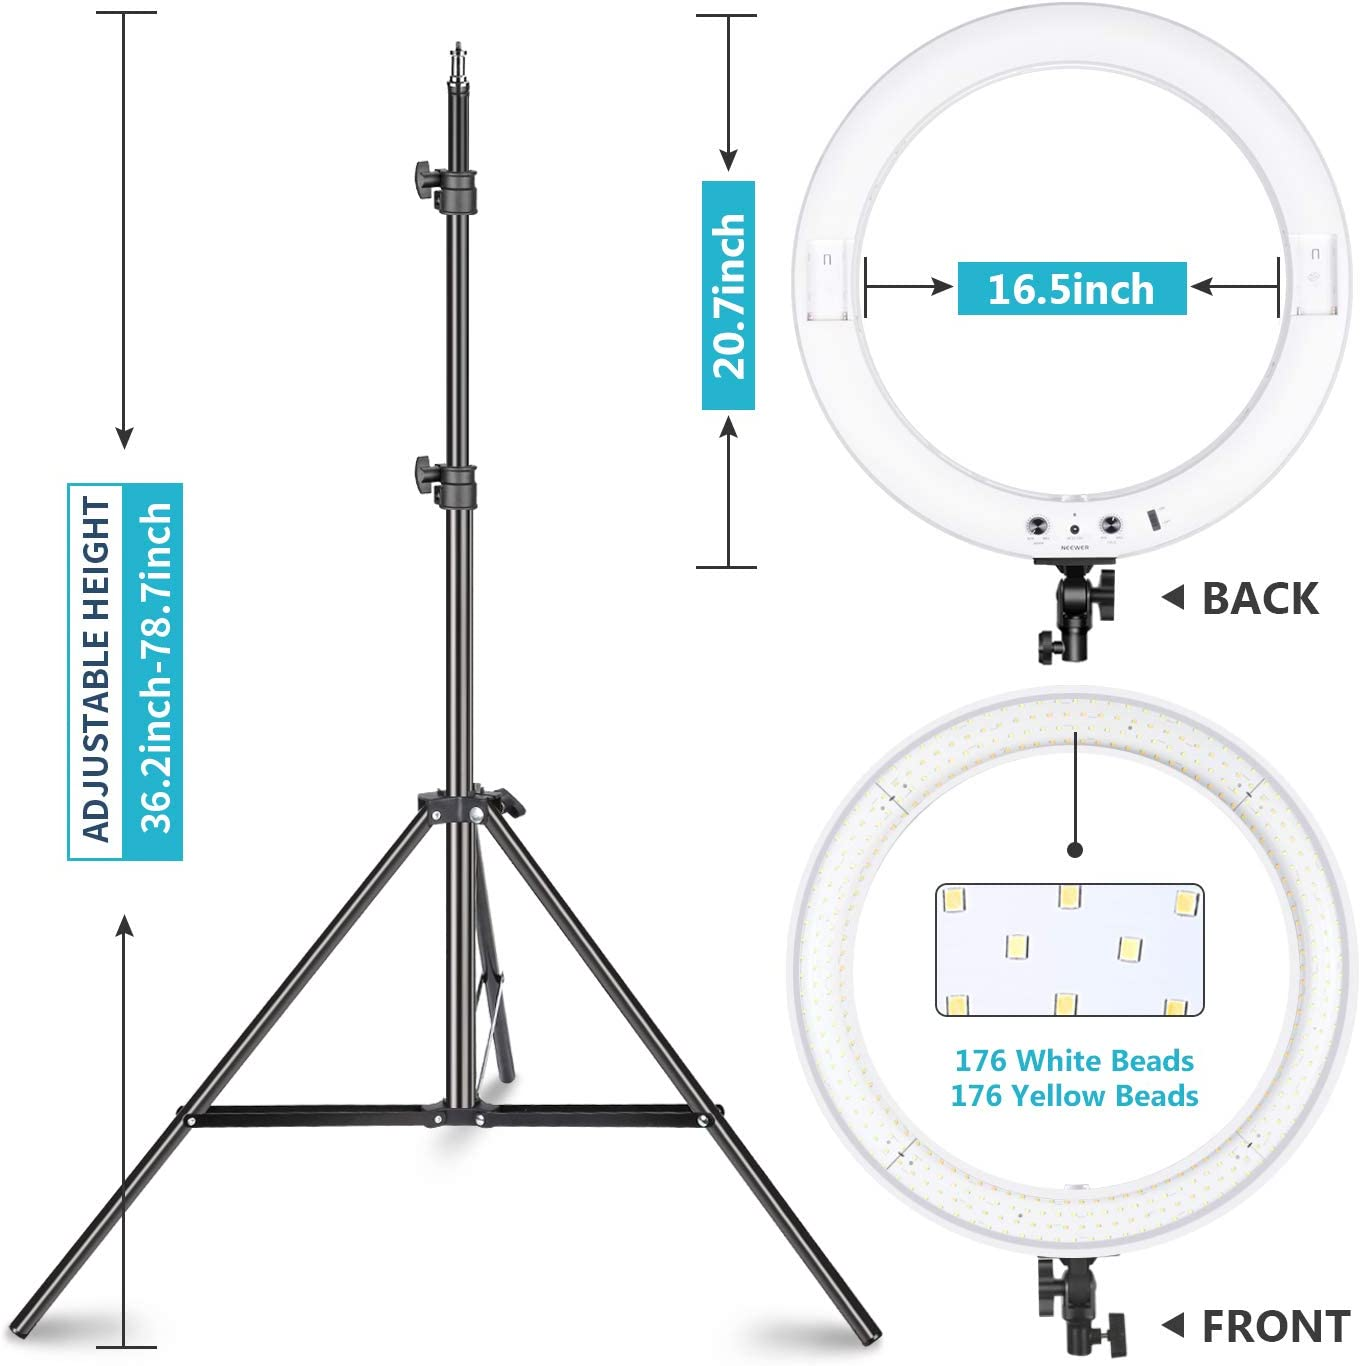 Neewer 20-inch LED Ring Light Kit for Makeup YouTube Video Blogger Salon Battery AC Adapter Charger Phone Clamp and Stand Included Adjustable Color Temperature with Battery or DC Power Option